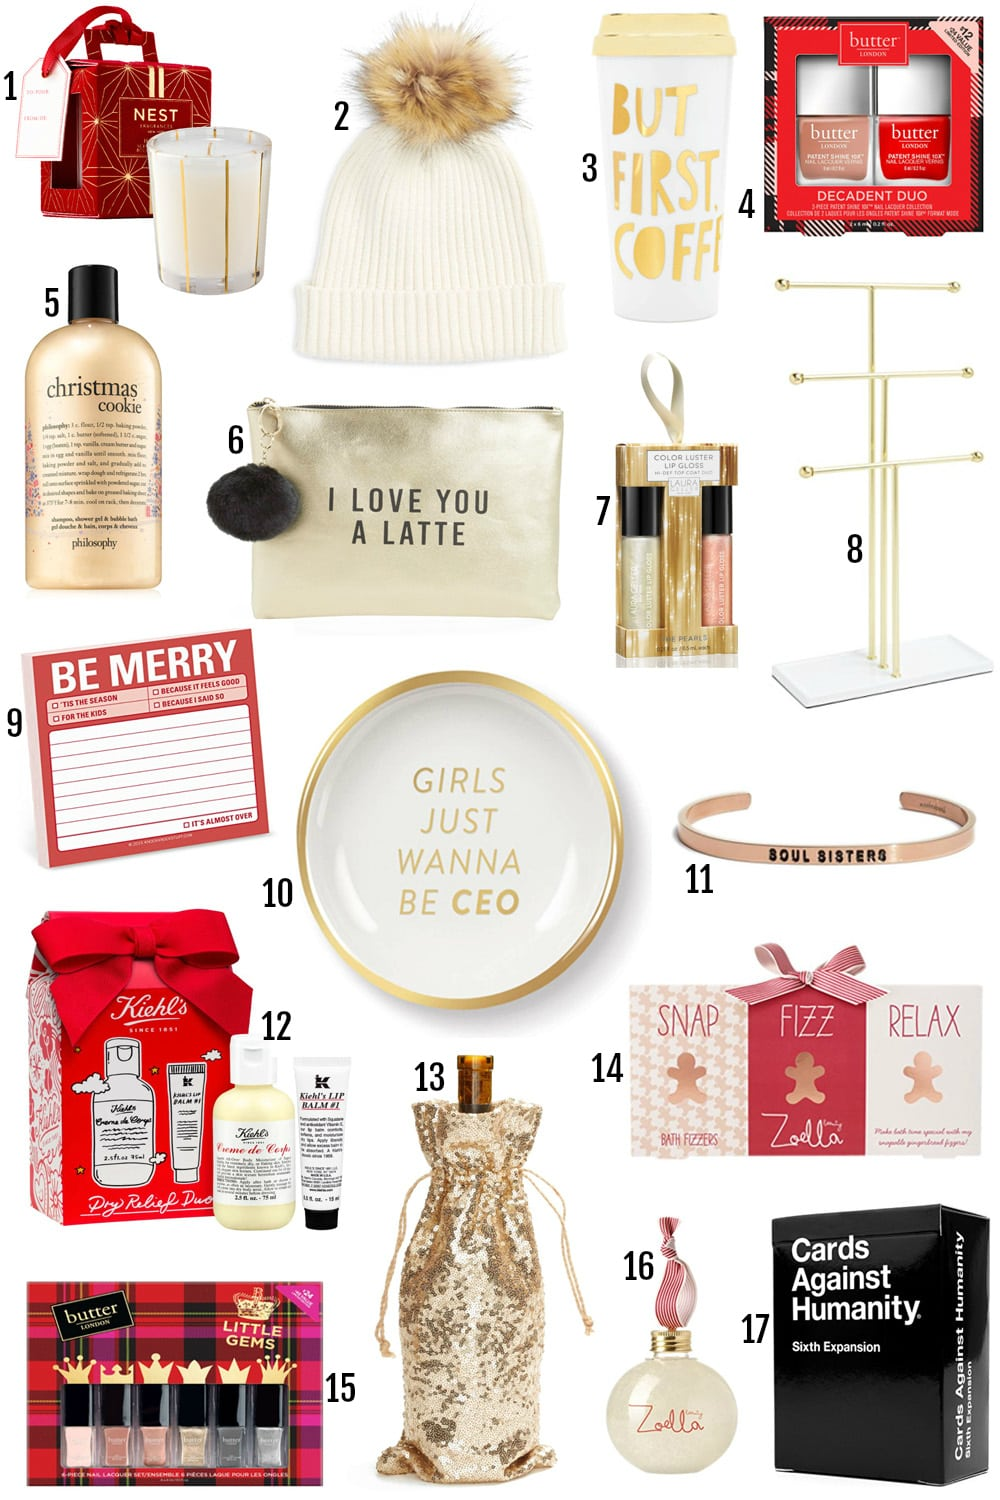 The BEST Gifts For Her Under $25 by popular Orlando style blogger Mash Elle | I love you a latte, zoella beauty